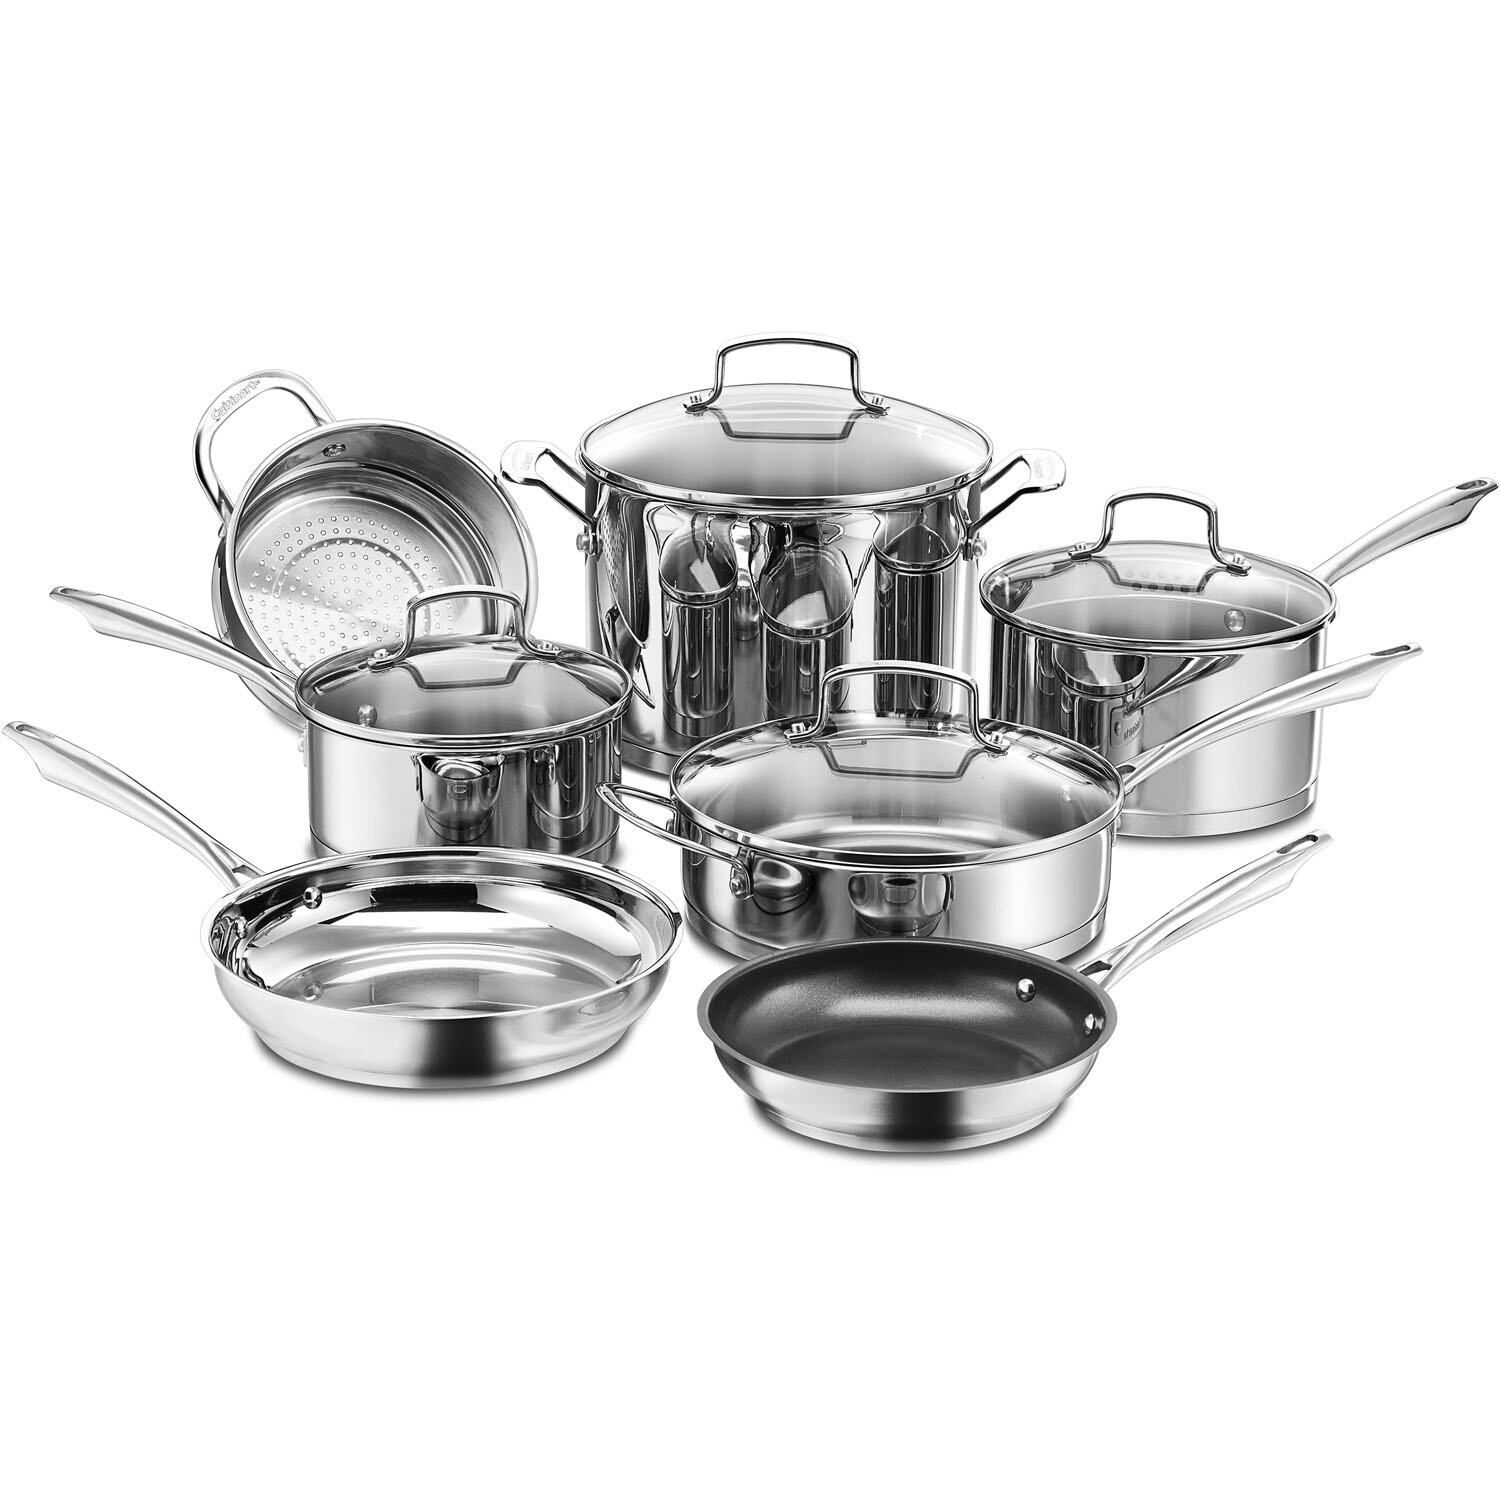 Professional Series 11 Piece Stainless Steel Cookware Set